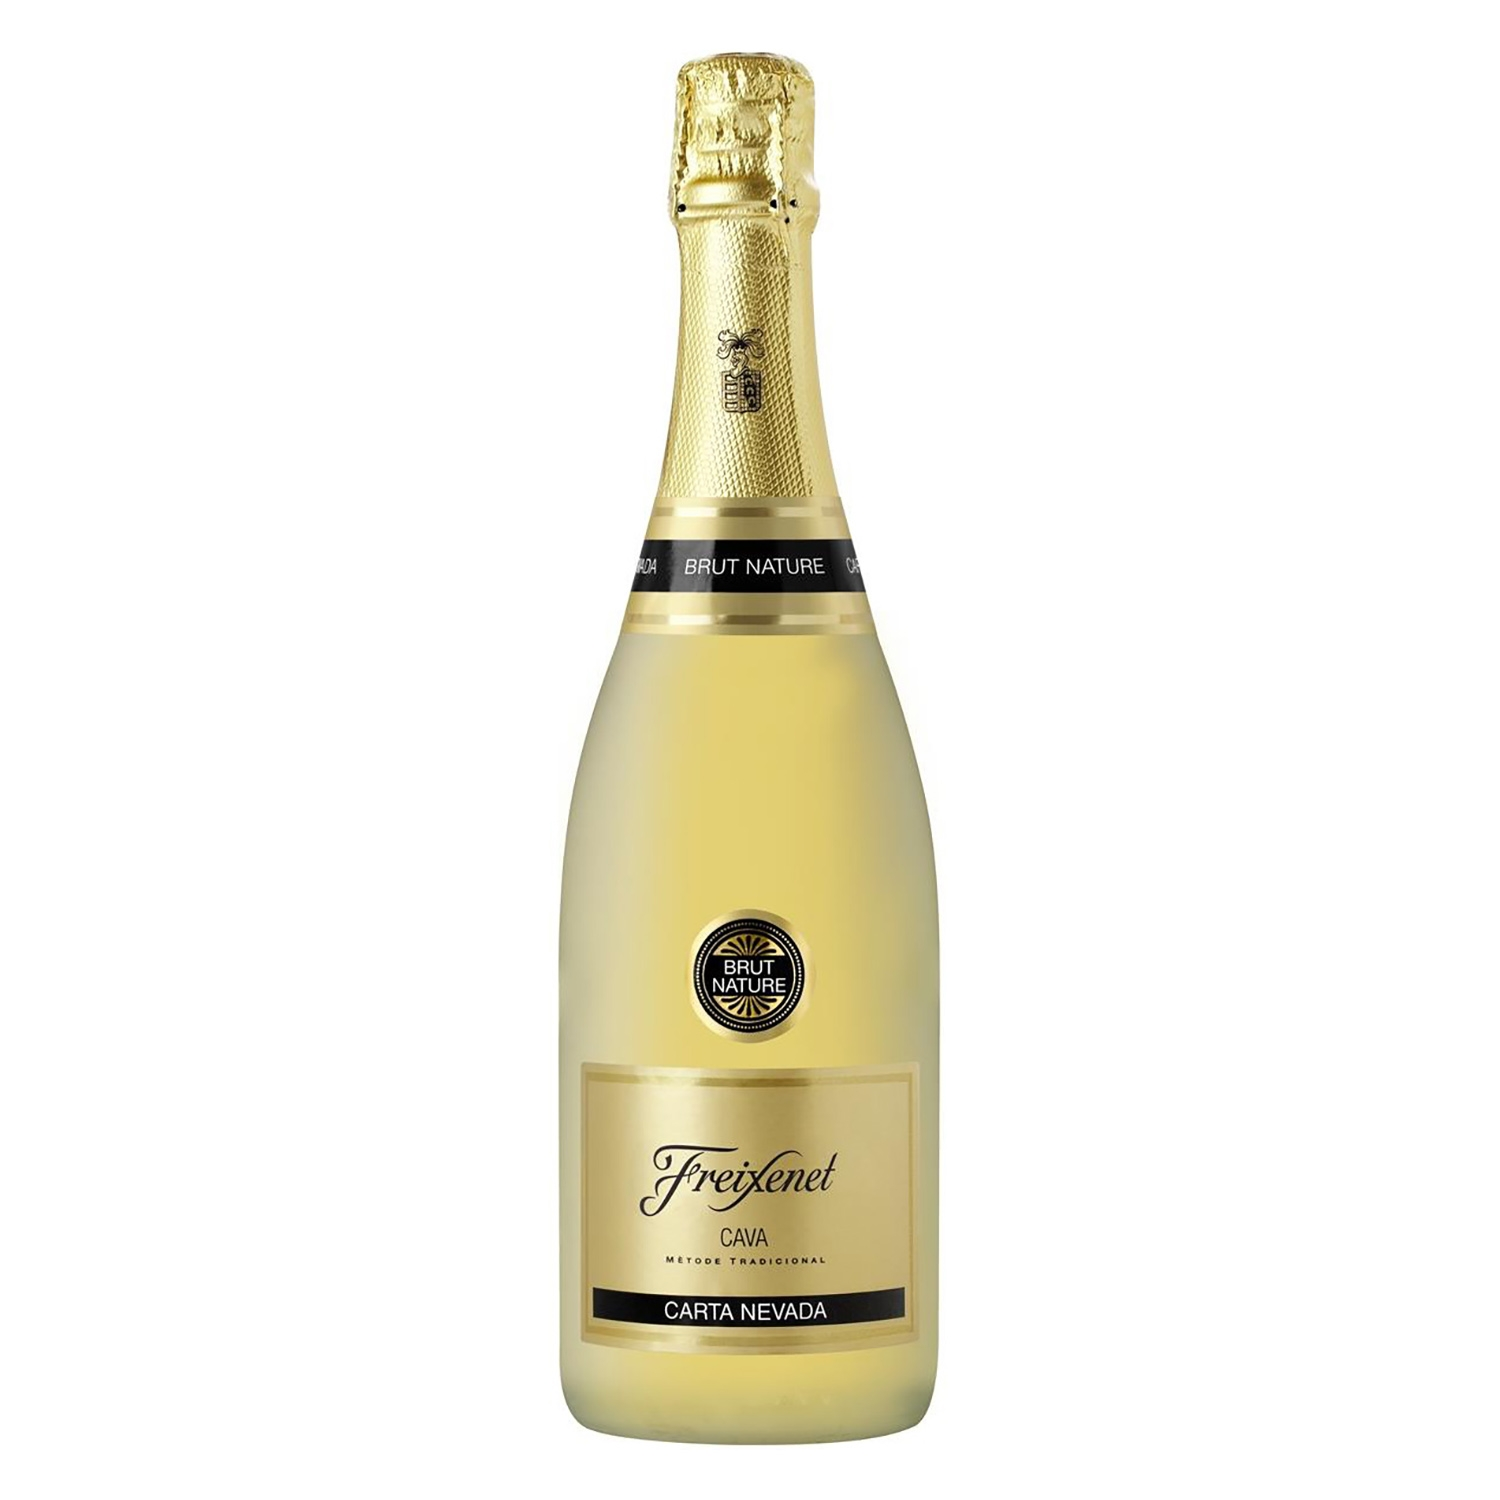 Cava Freixenet Carta Nevada brut nature 75 cl.